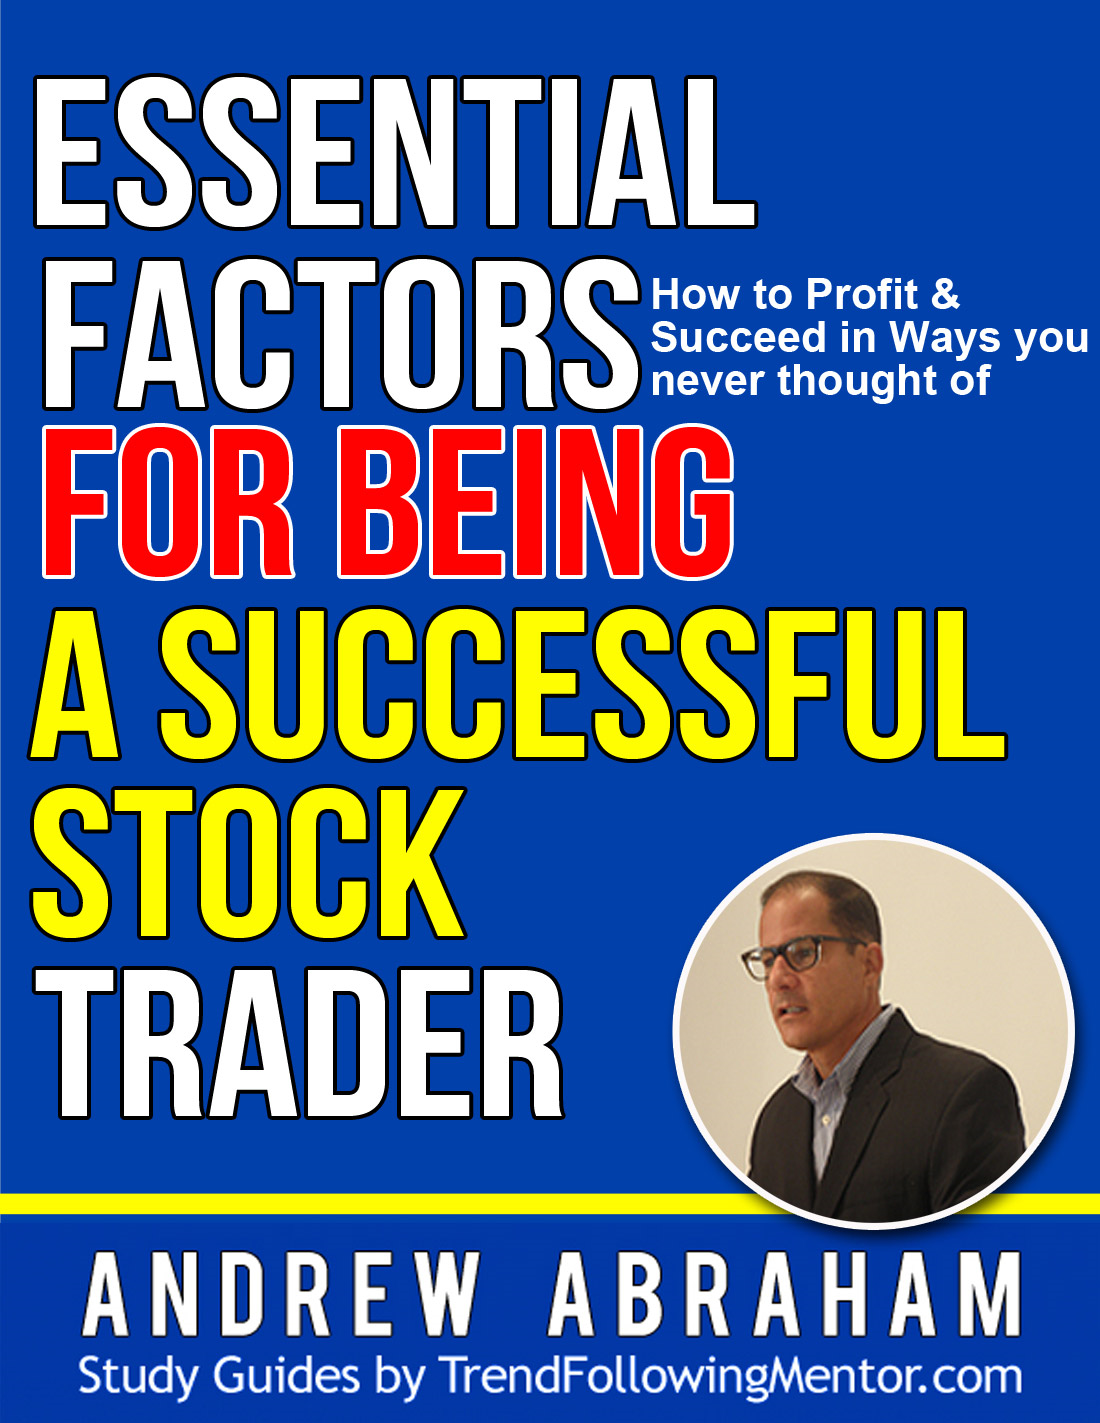 Stock Trading Mistakes- Learn to be a Better Trader